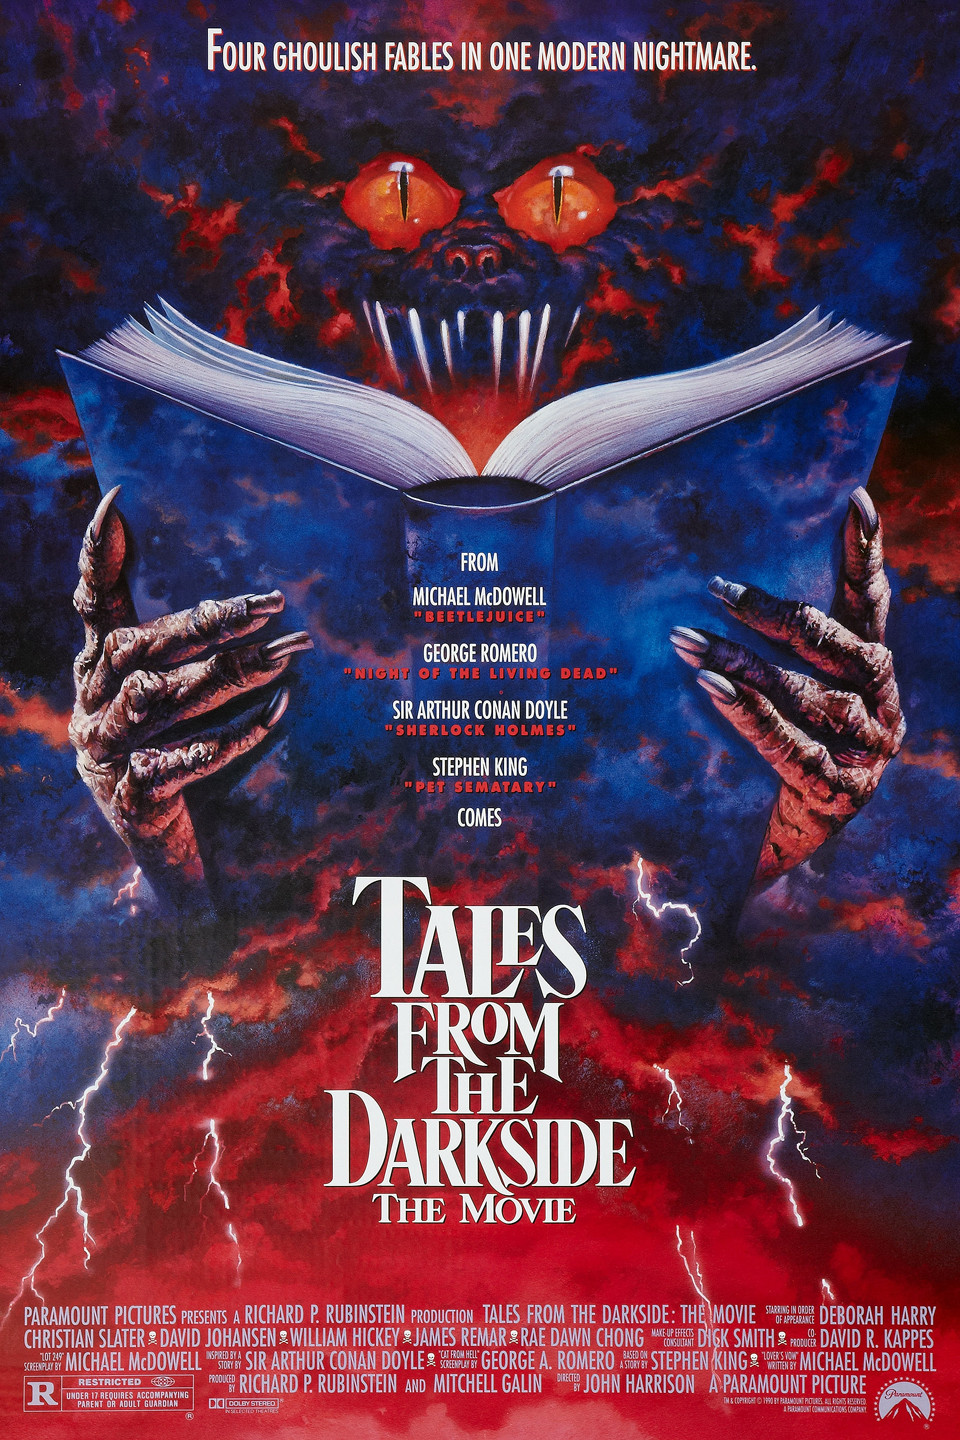 tales_from_the_darkside_the_movie_poster_1990_01.jpg